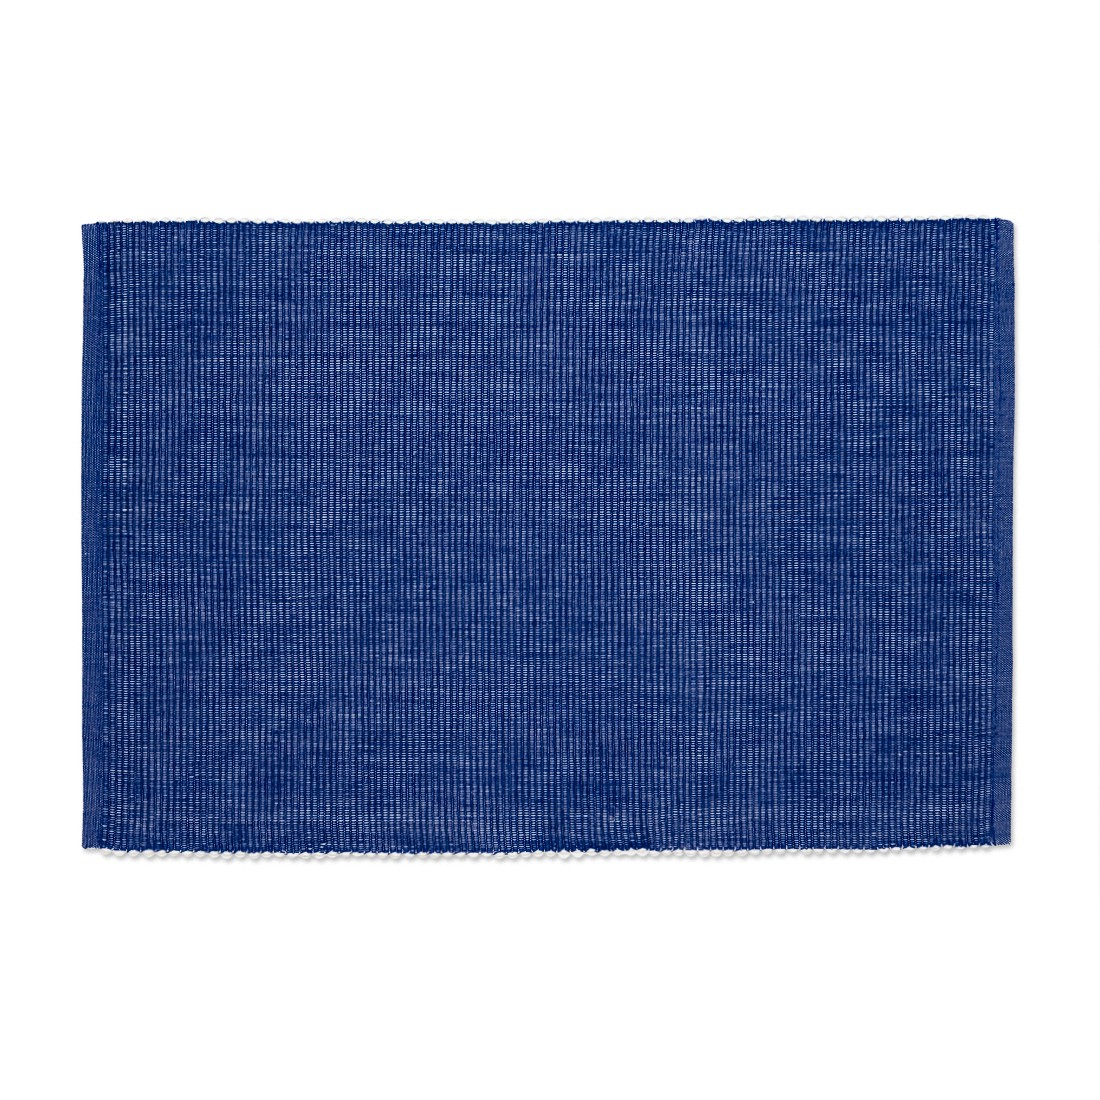 Linen Tablecloth Ribbed Cotton Placemat Set (Set of 4), Denim Blue by Linen Tablecloth